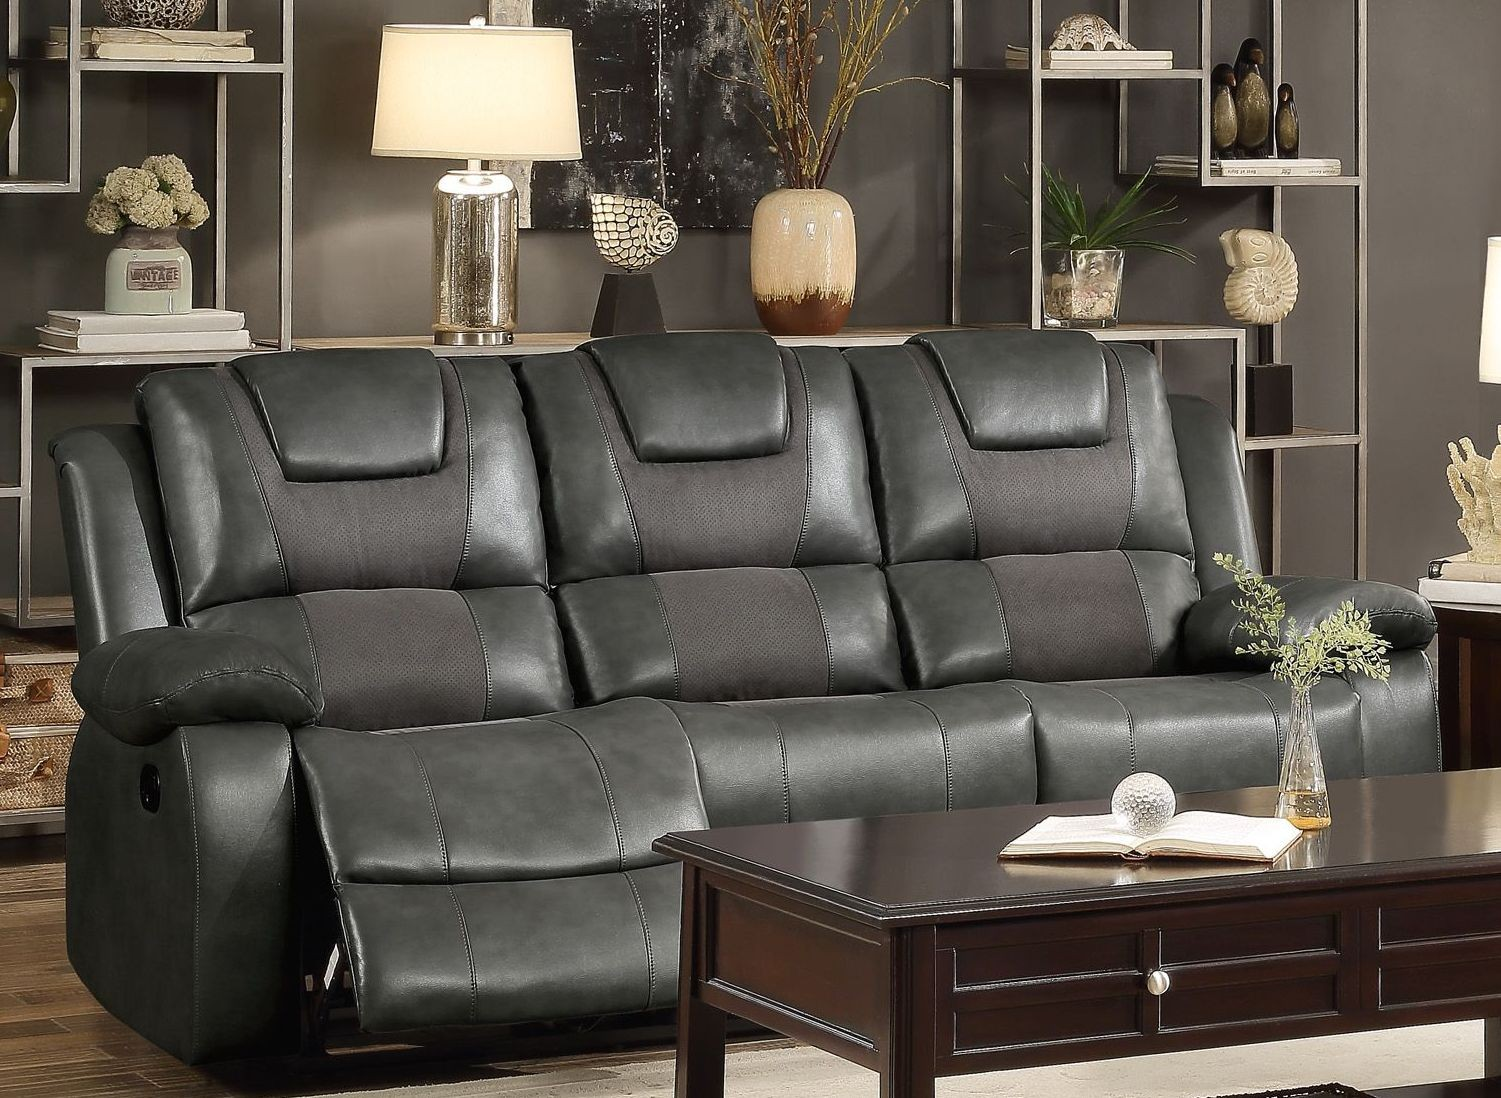 Taye gray double reclining sofa from homelegance coleman for Grey double divan